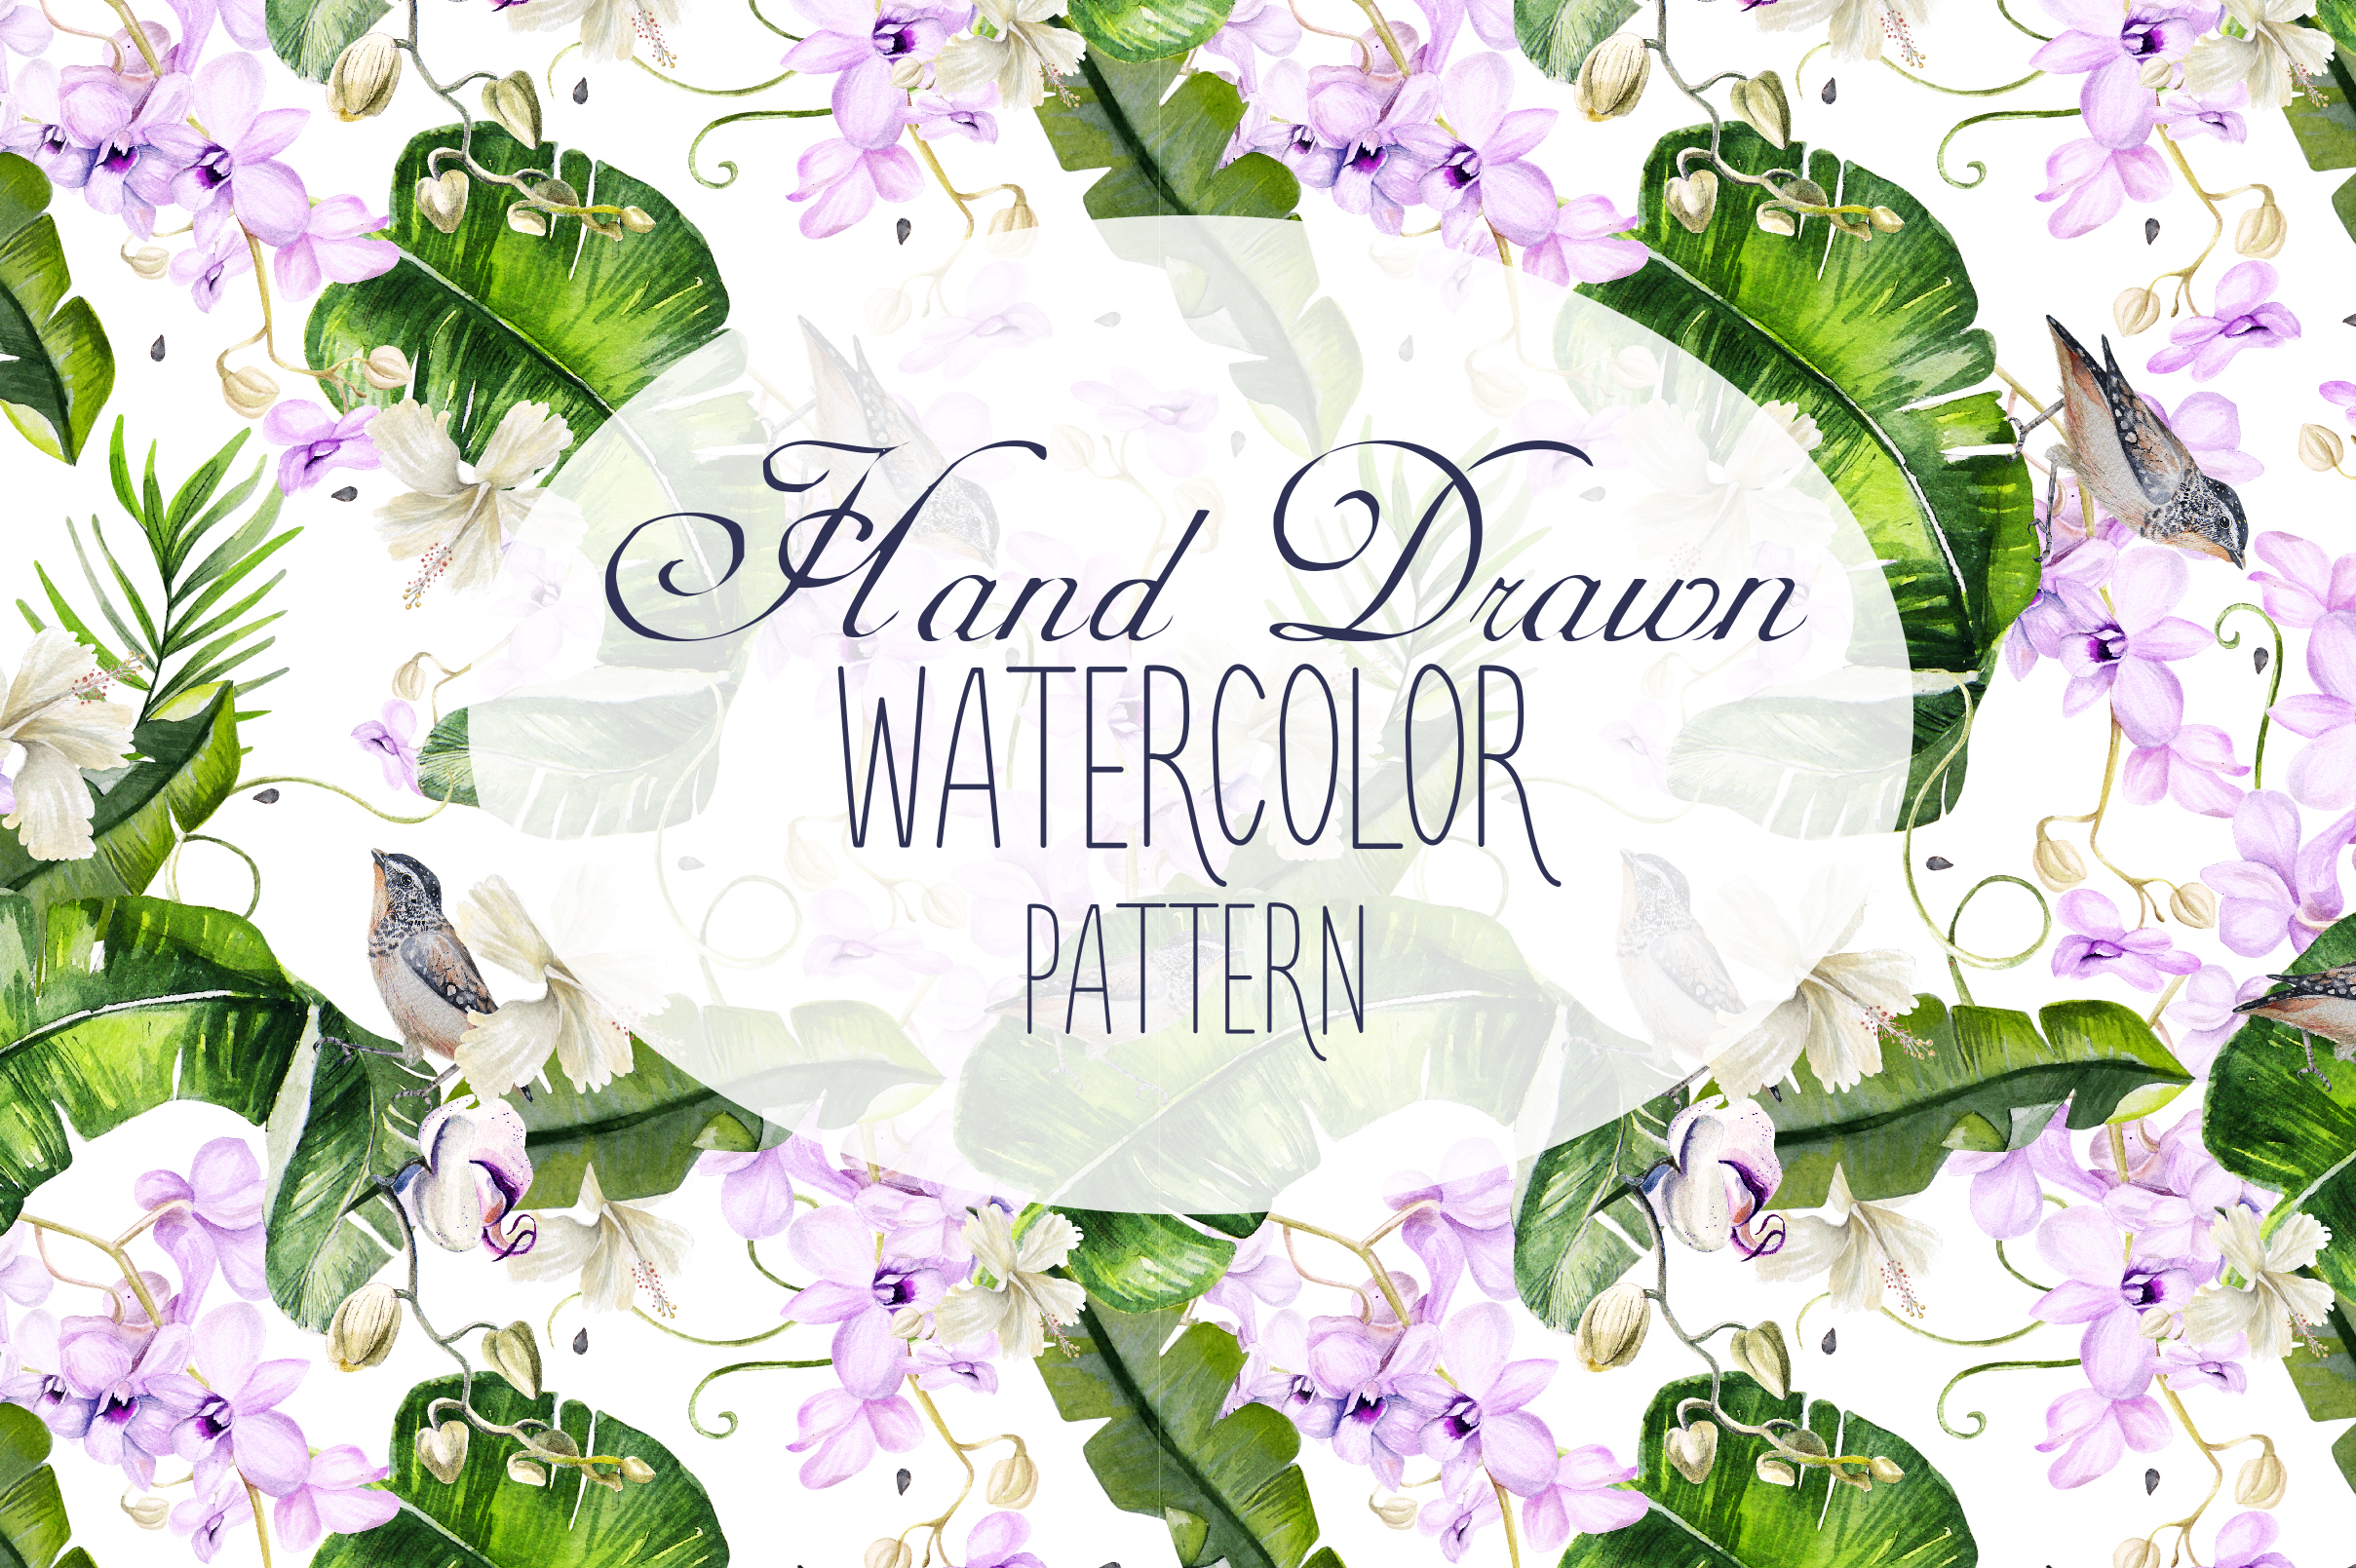 16 Hand Drawn Watercolor Pattern example image 18